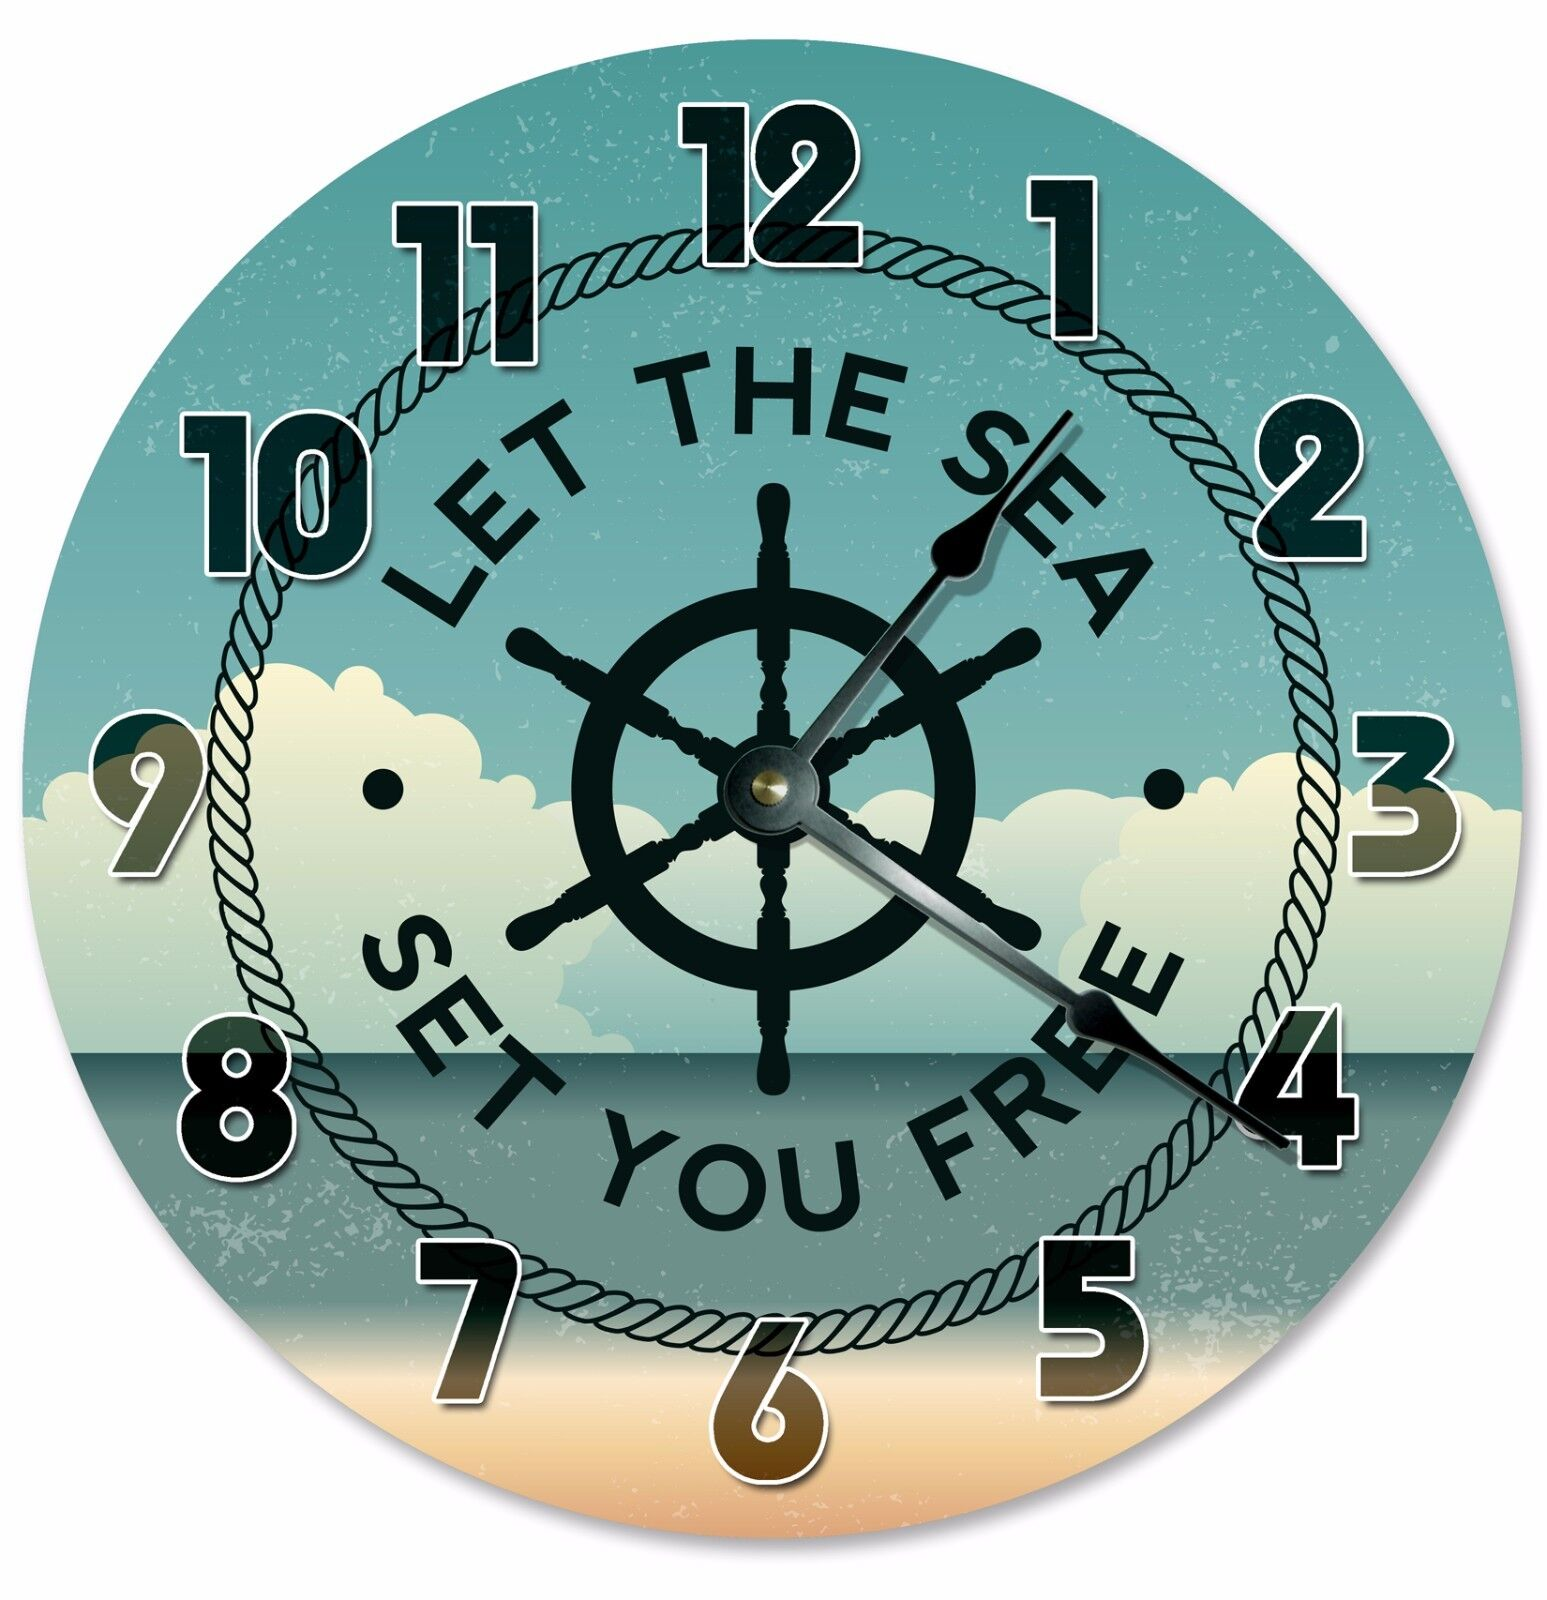 "LET THE SEA Set You Free Clock - Large 10.5"" Wall Clock - 2193"